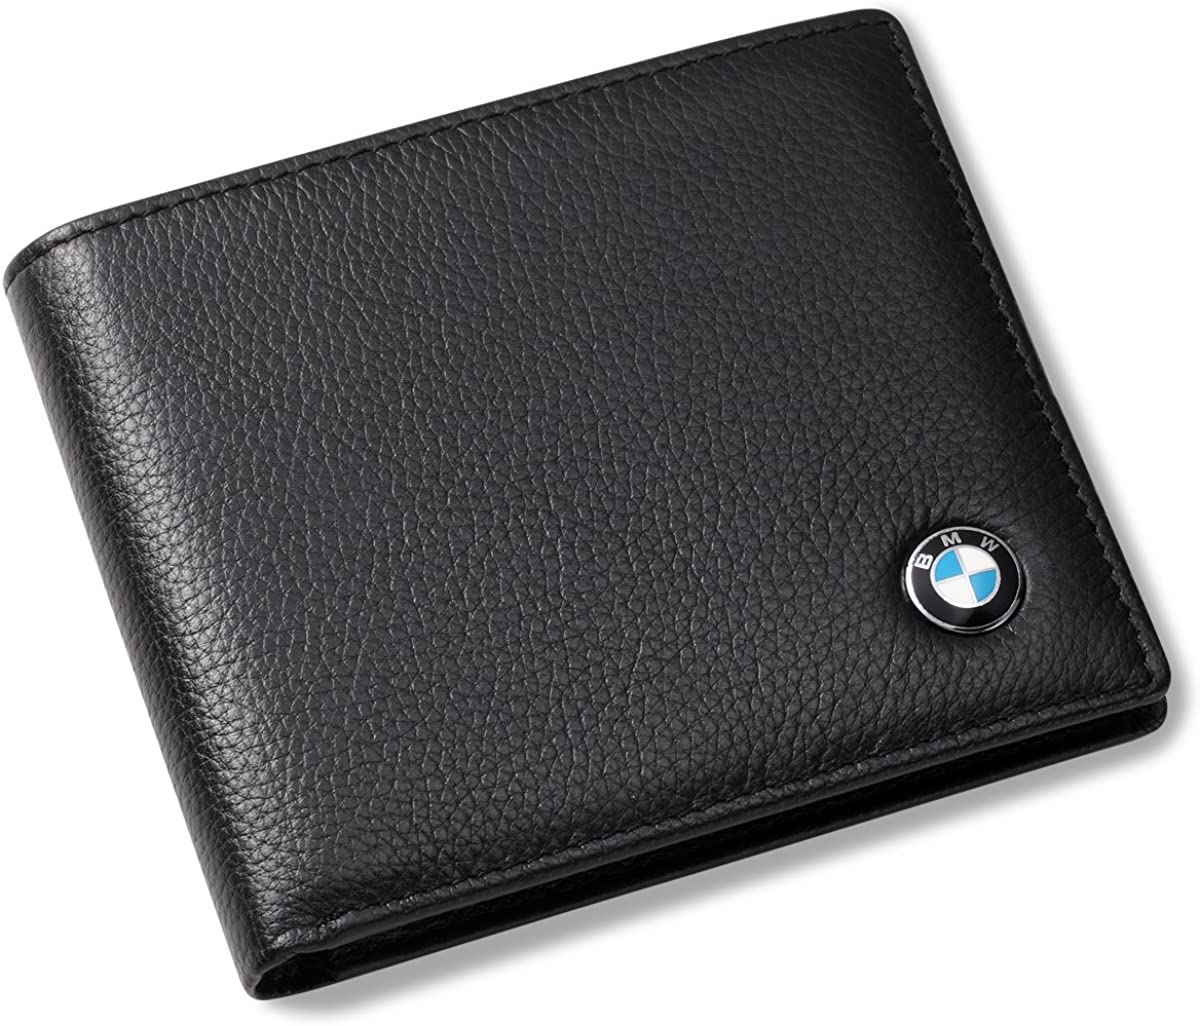 BMW Bifold Wallet with 3 Credit Card Slots and ID Window - Genuine Leather